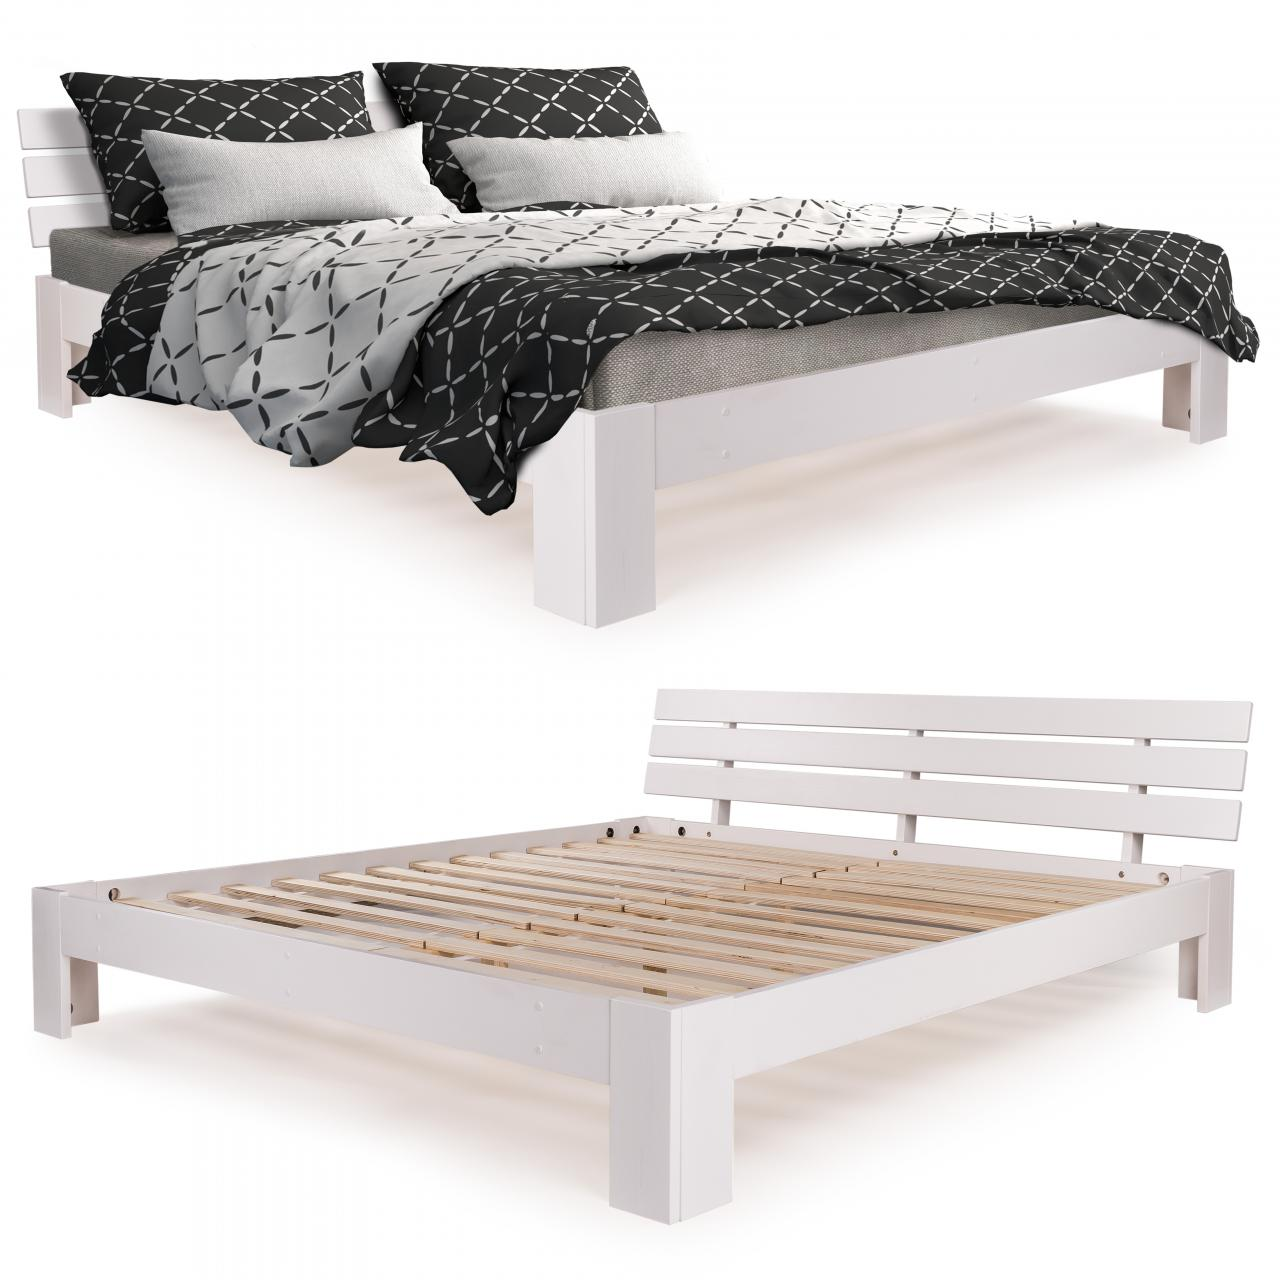 homelux holzbett kiefer doppelbett bettgestell bettrahmen lattenrost massiv ebay. Black Bedroom Furniture Sets. Home Design Ideas